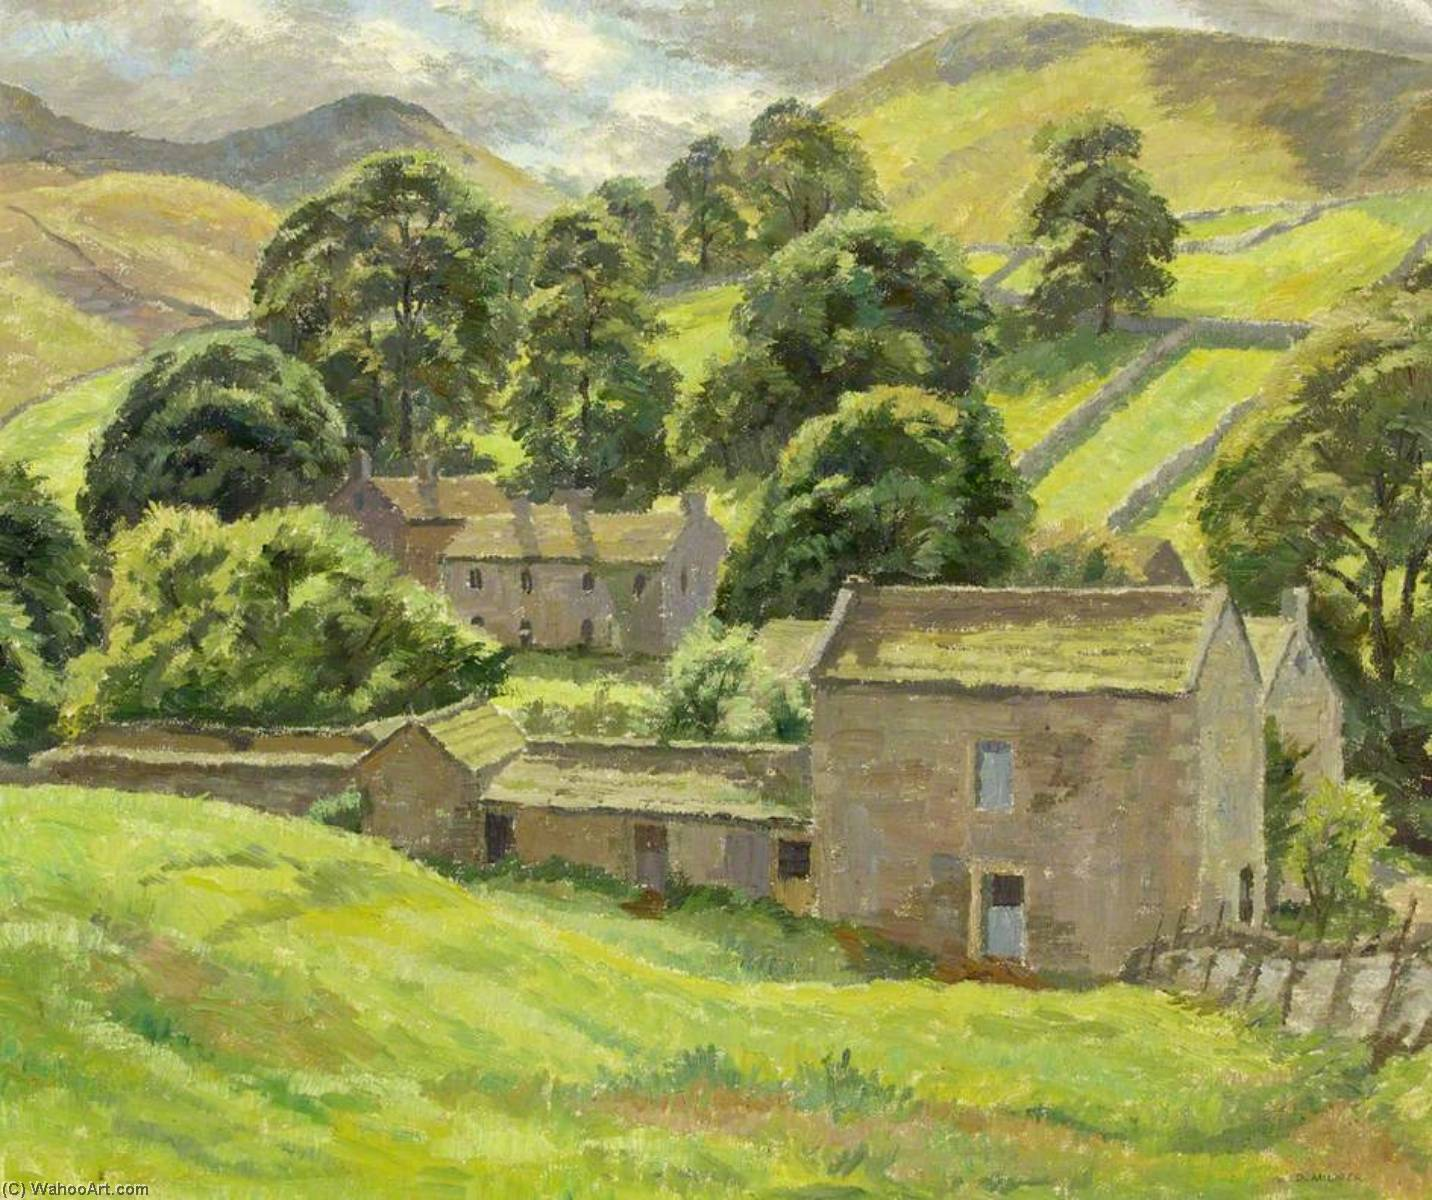 Wikioo.org - The Encyclopedia of Fine Arts - Painting, Artwork by Donald Ewart Milner - After Rain, Thorpe in Craven